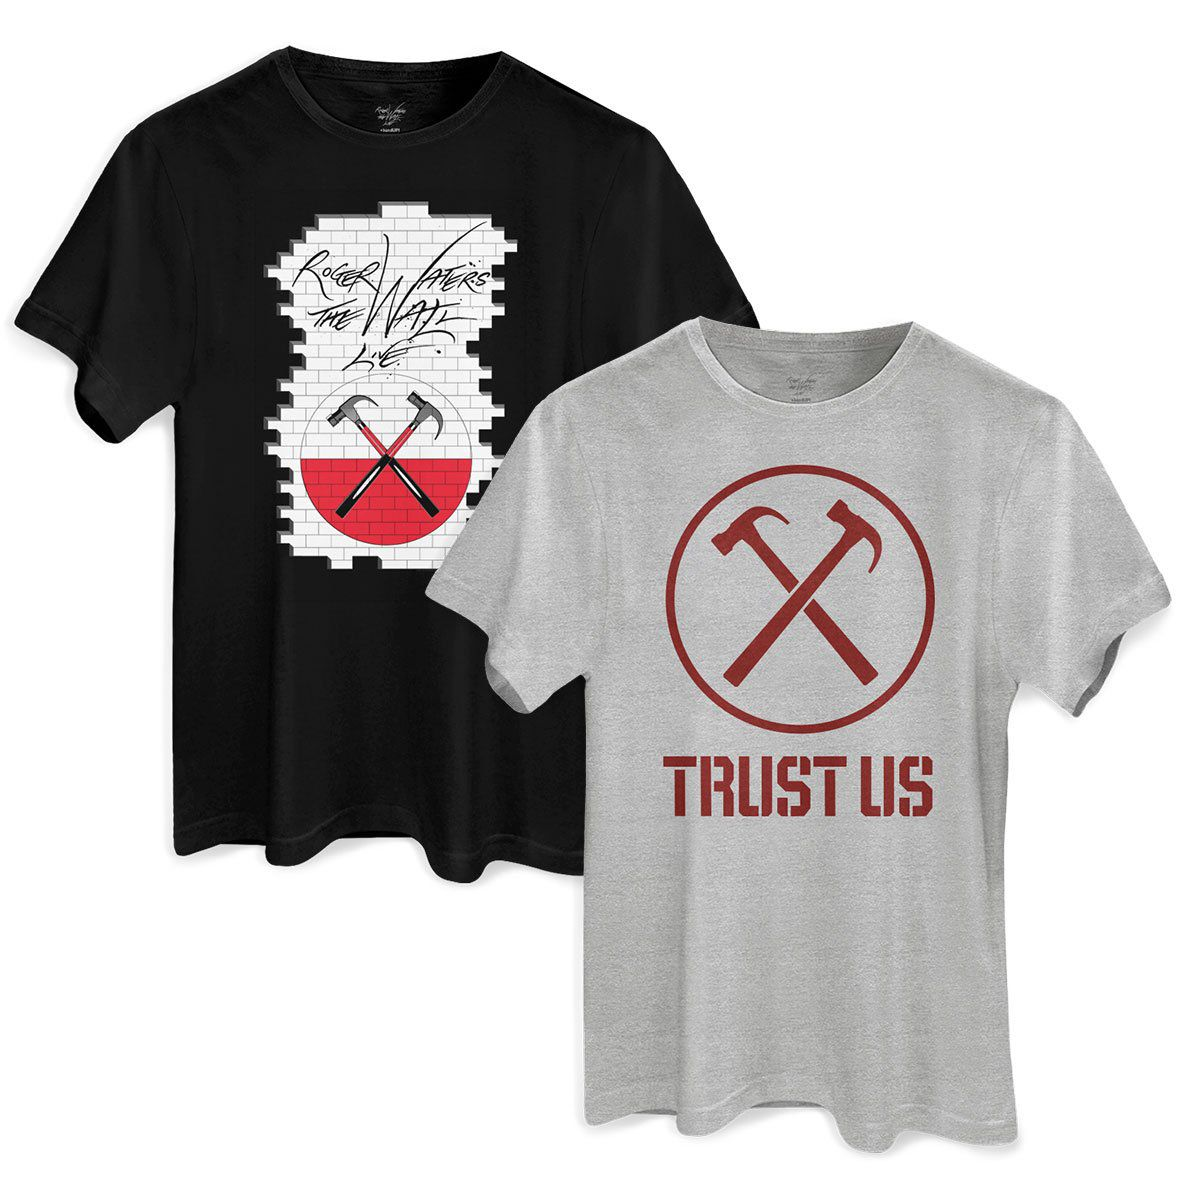 Kit Show 2 Camisetas Roger Waters The Wall e Trust Us Masculino  - bandUP Store Marketplace